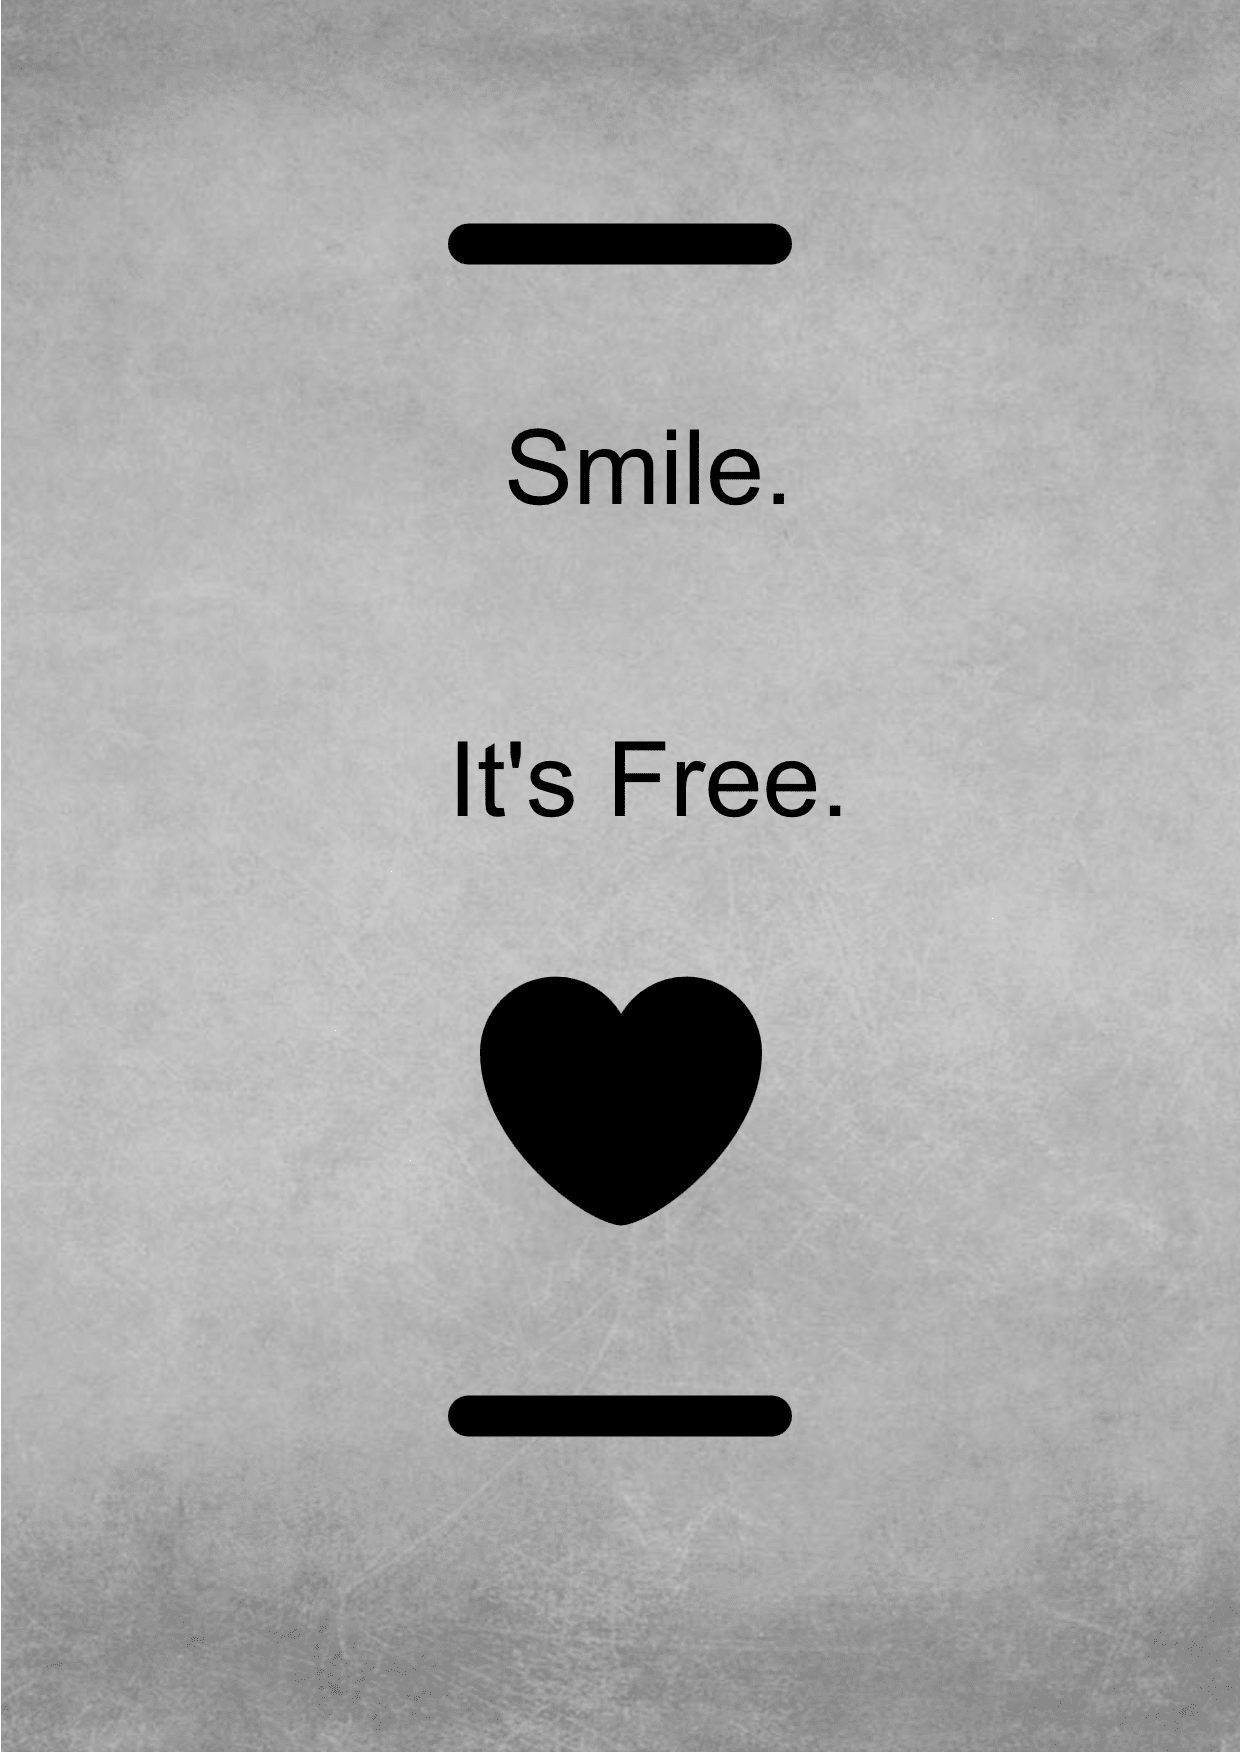 Black,                And,                White,                Text,                Monochrome,                Photography,                Font,                Love,                Product,                Design,                Angle,                Heart,                Poster,                 Free Image